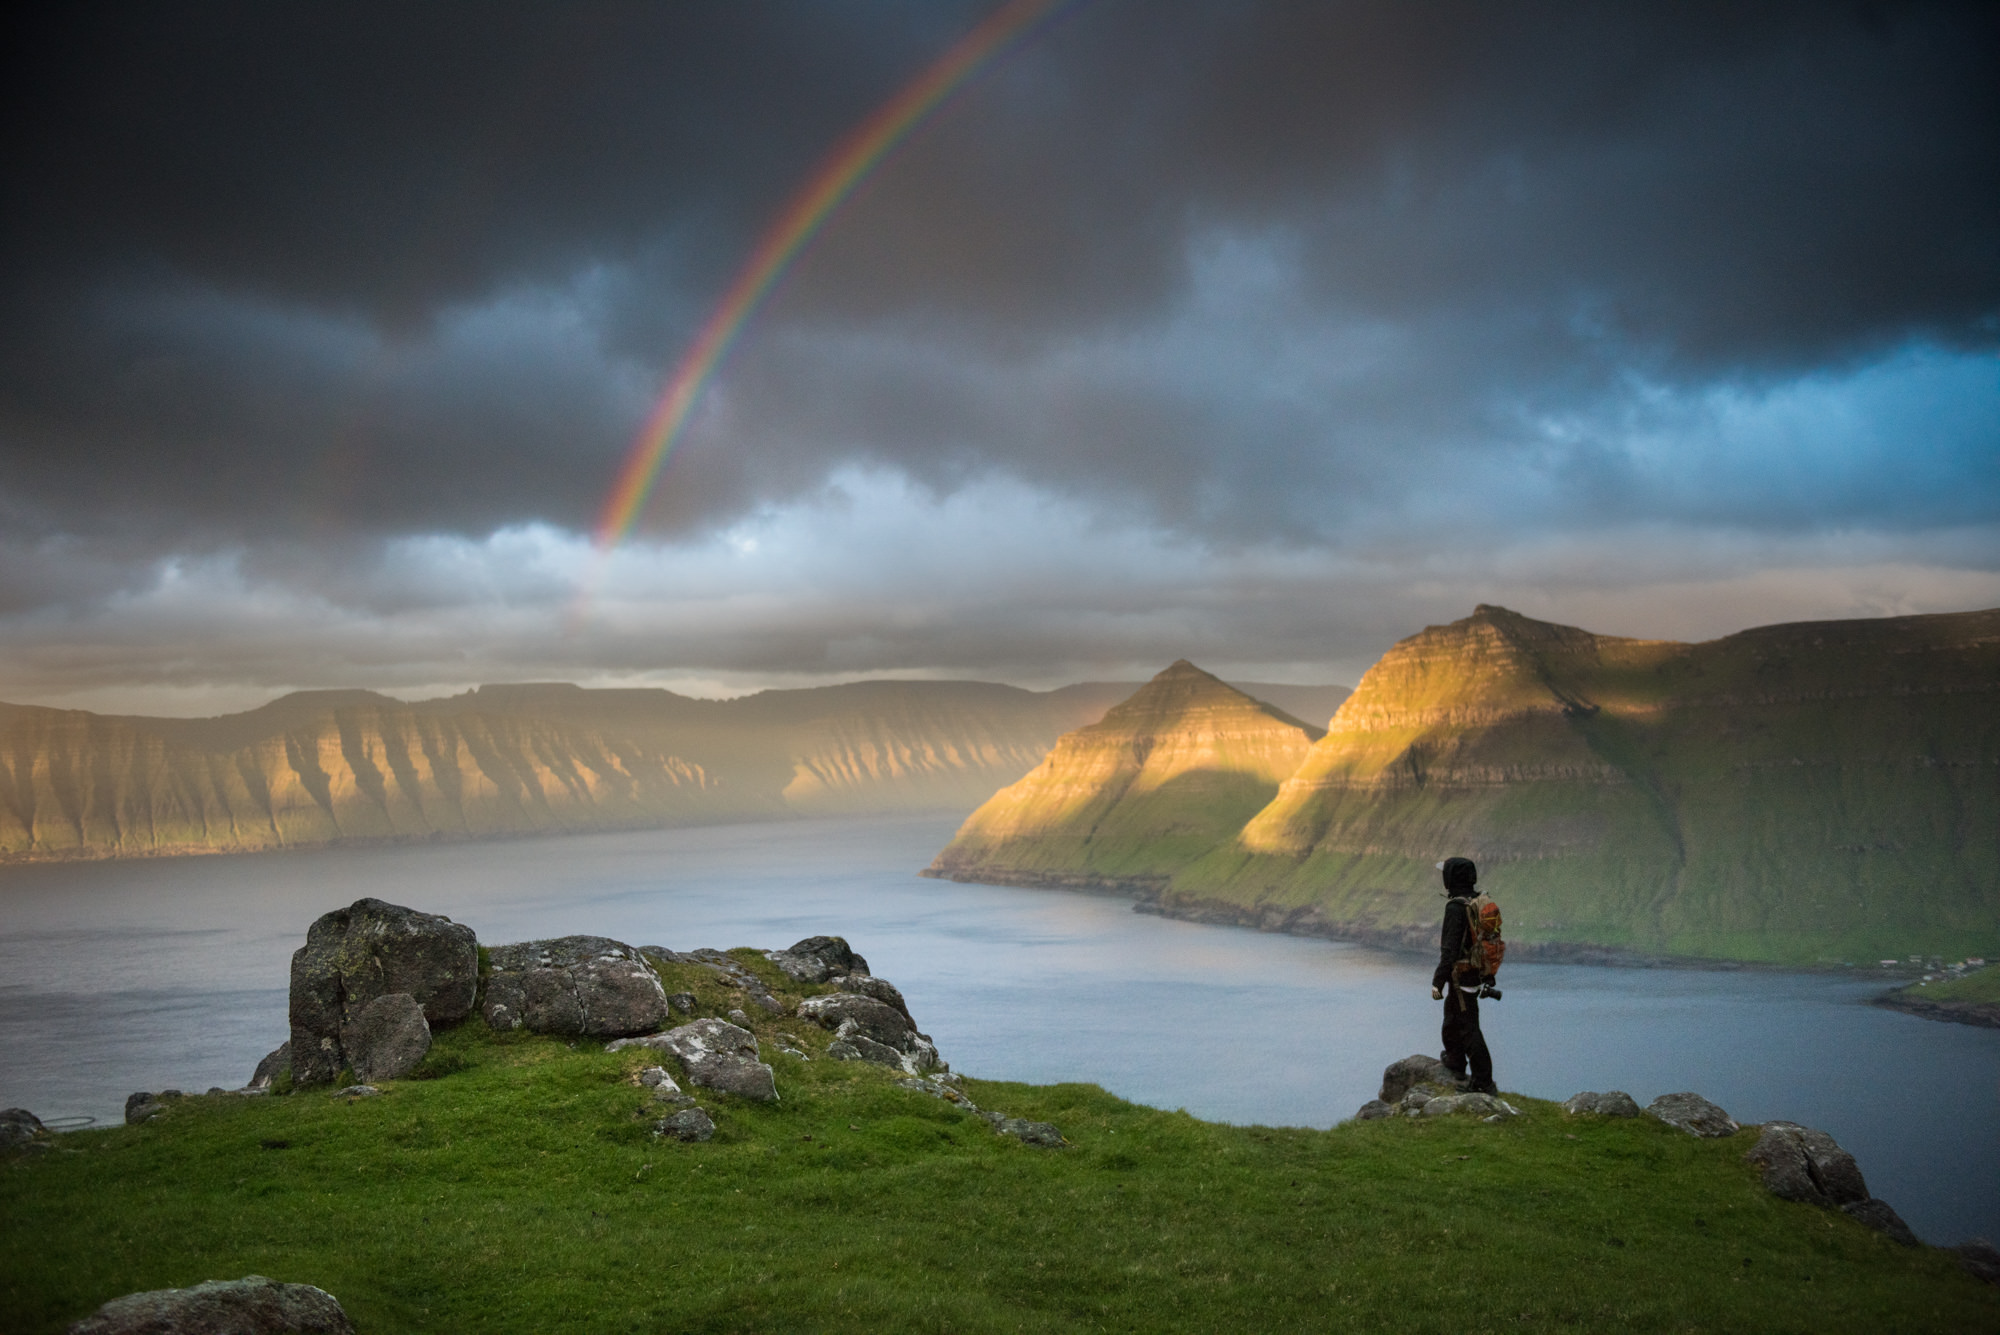 Faroe Islands Fjords in dramatic light with a rainbow and a man looking out